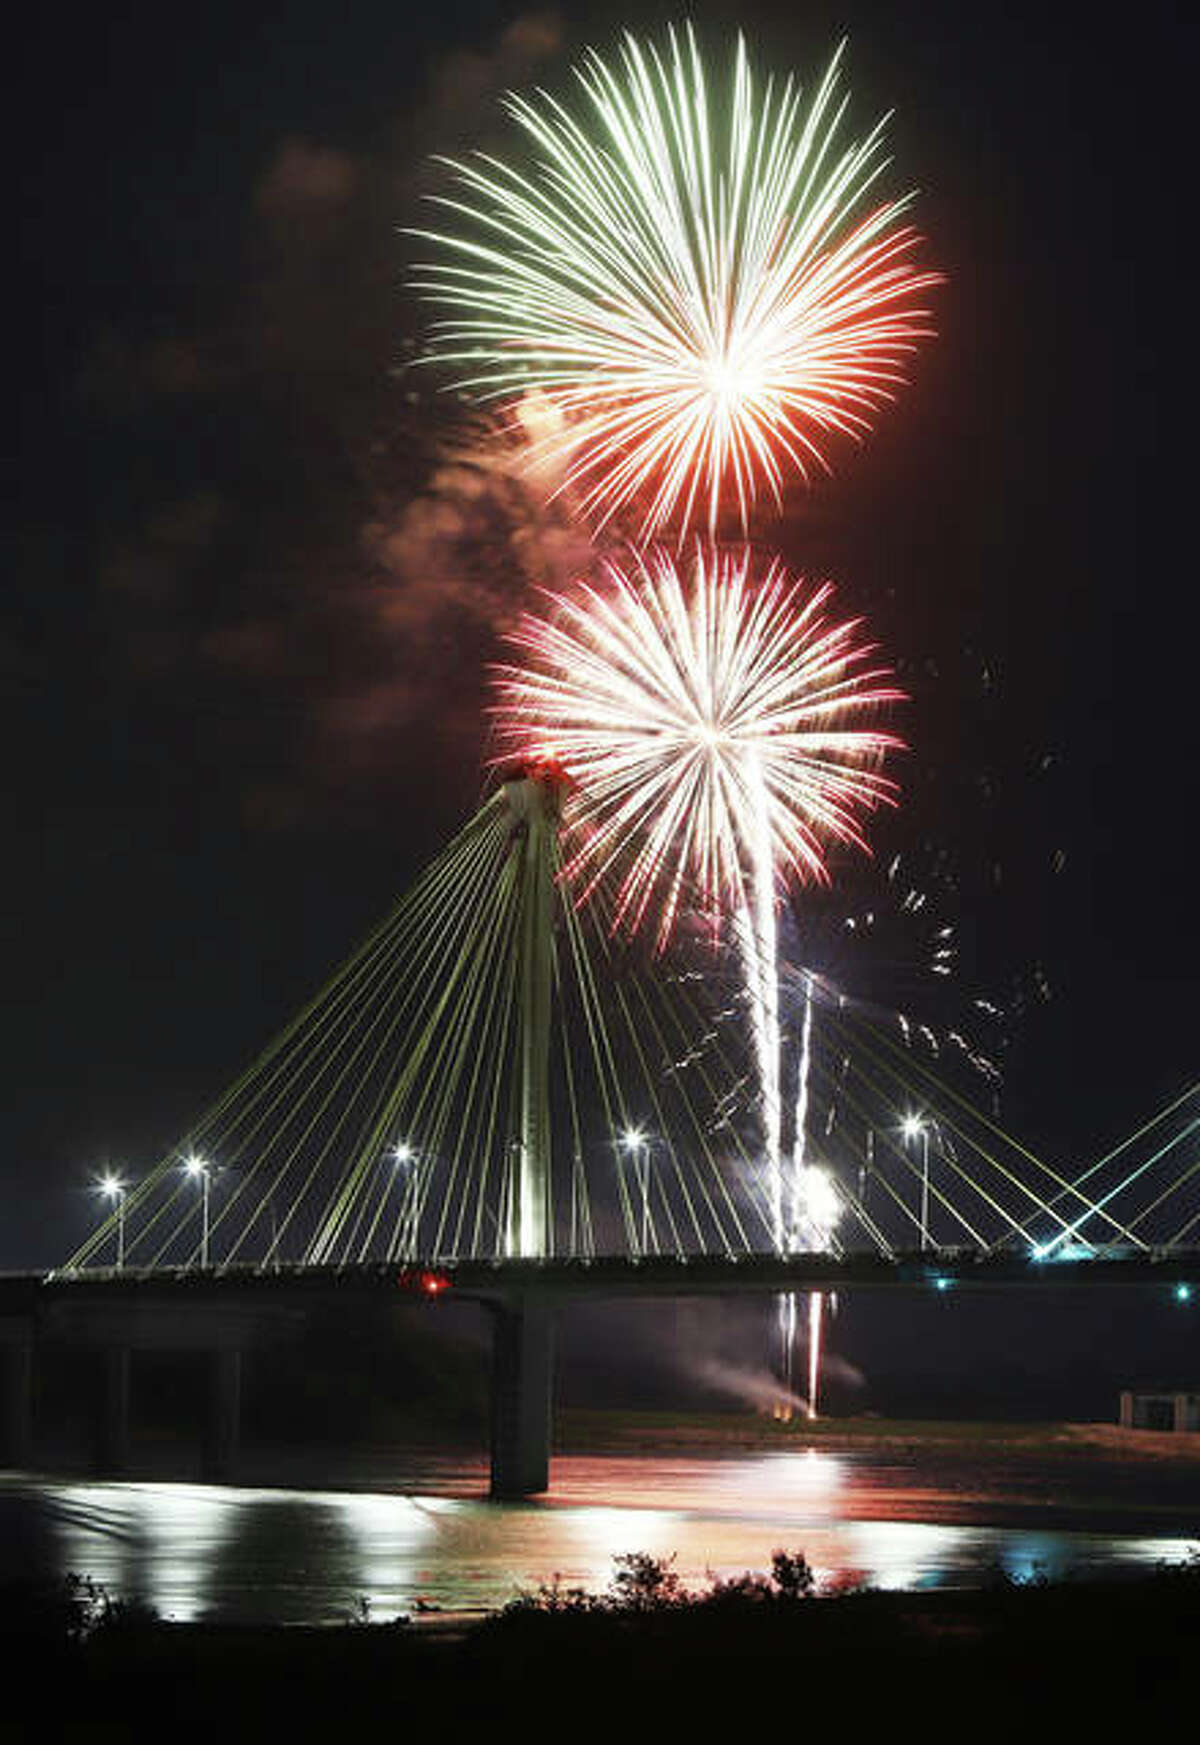 FILE - A photo from Saturday night's fireworks in Alton.